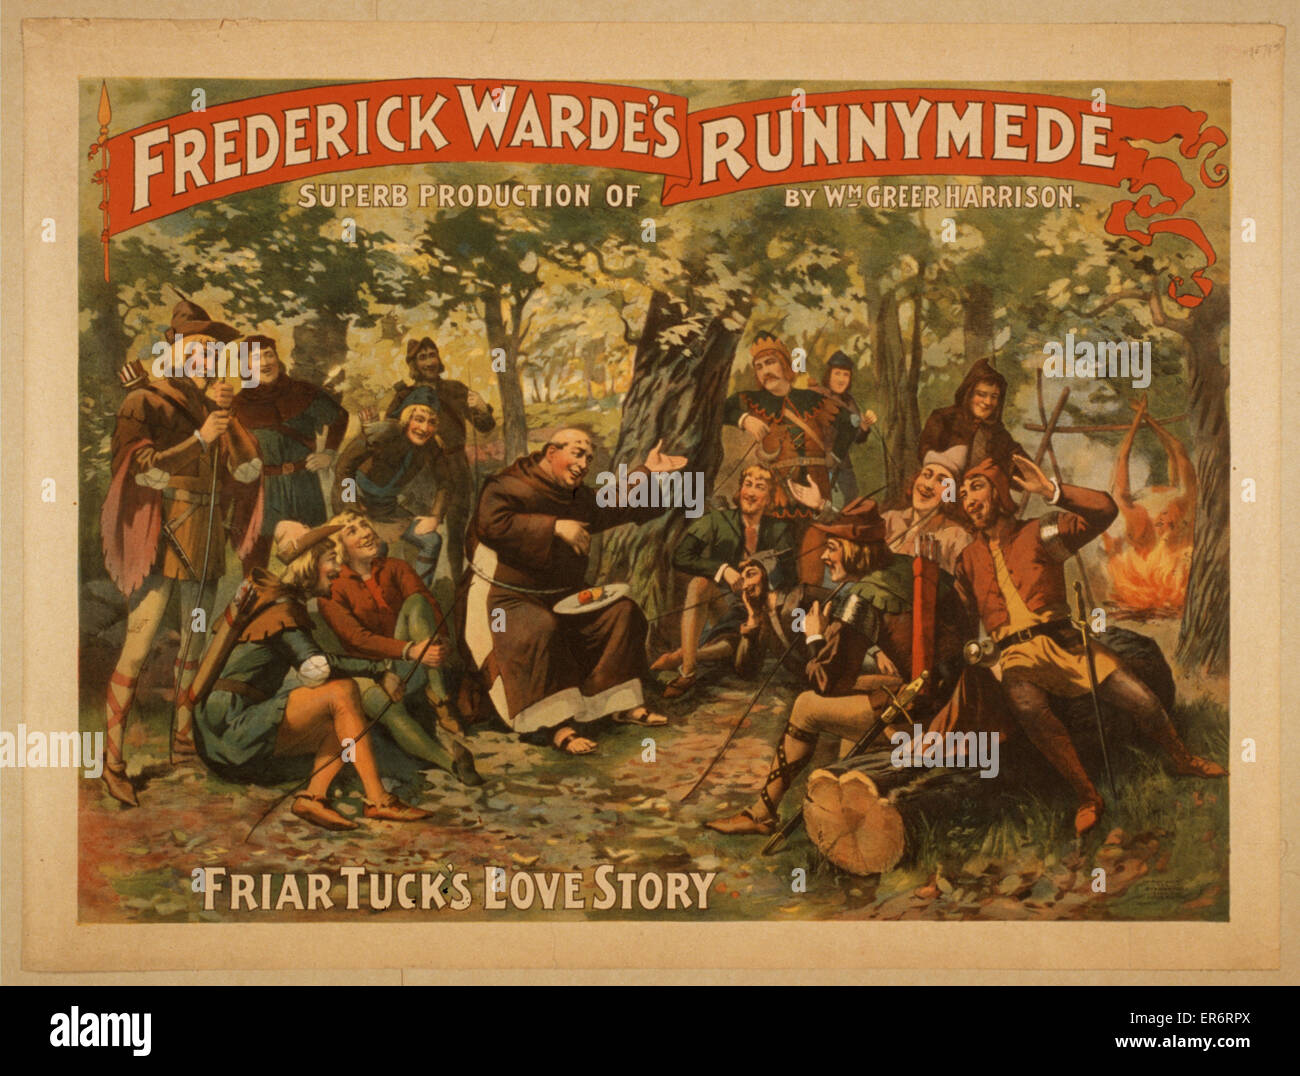 Frederick Warde's superb production of Runnymede by Wm. Greer Harrison. Date c1895. - Stock Image